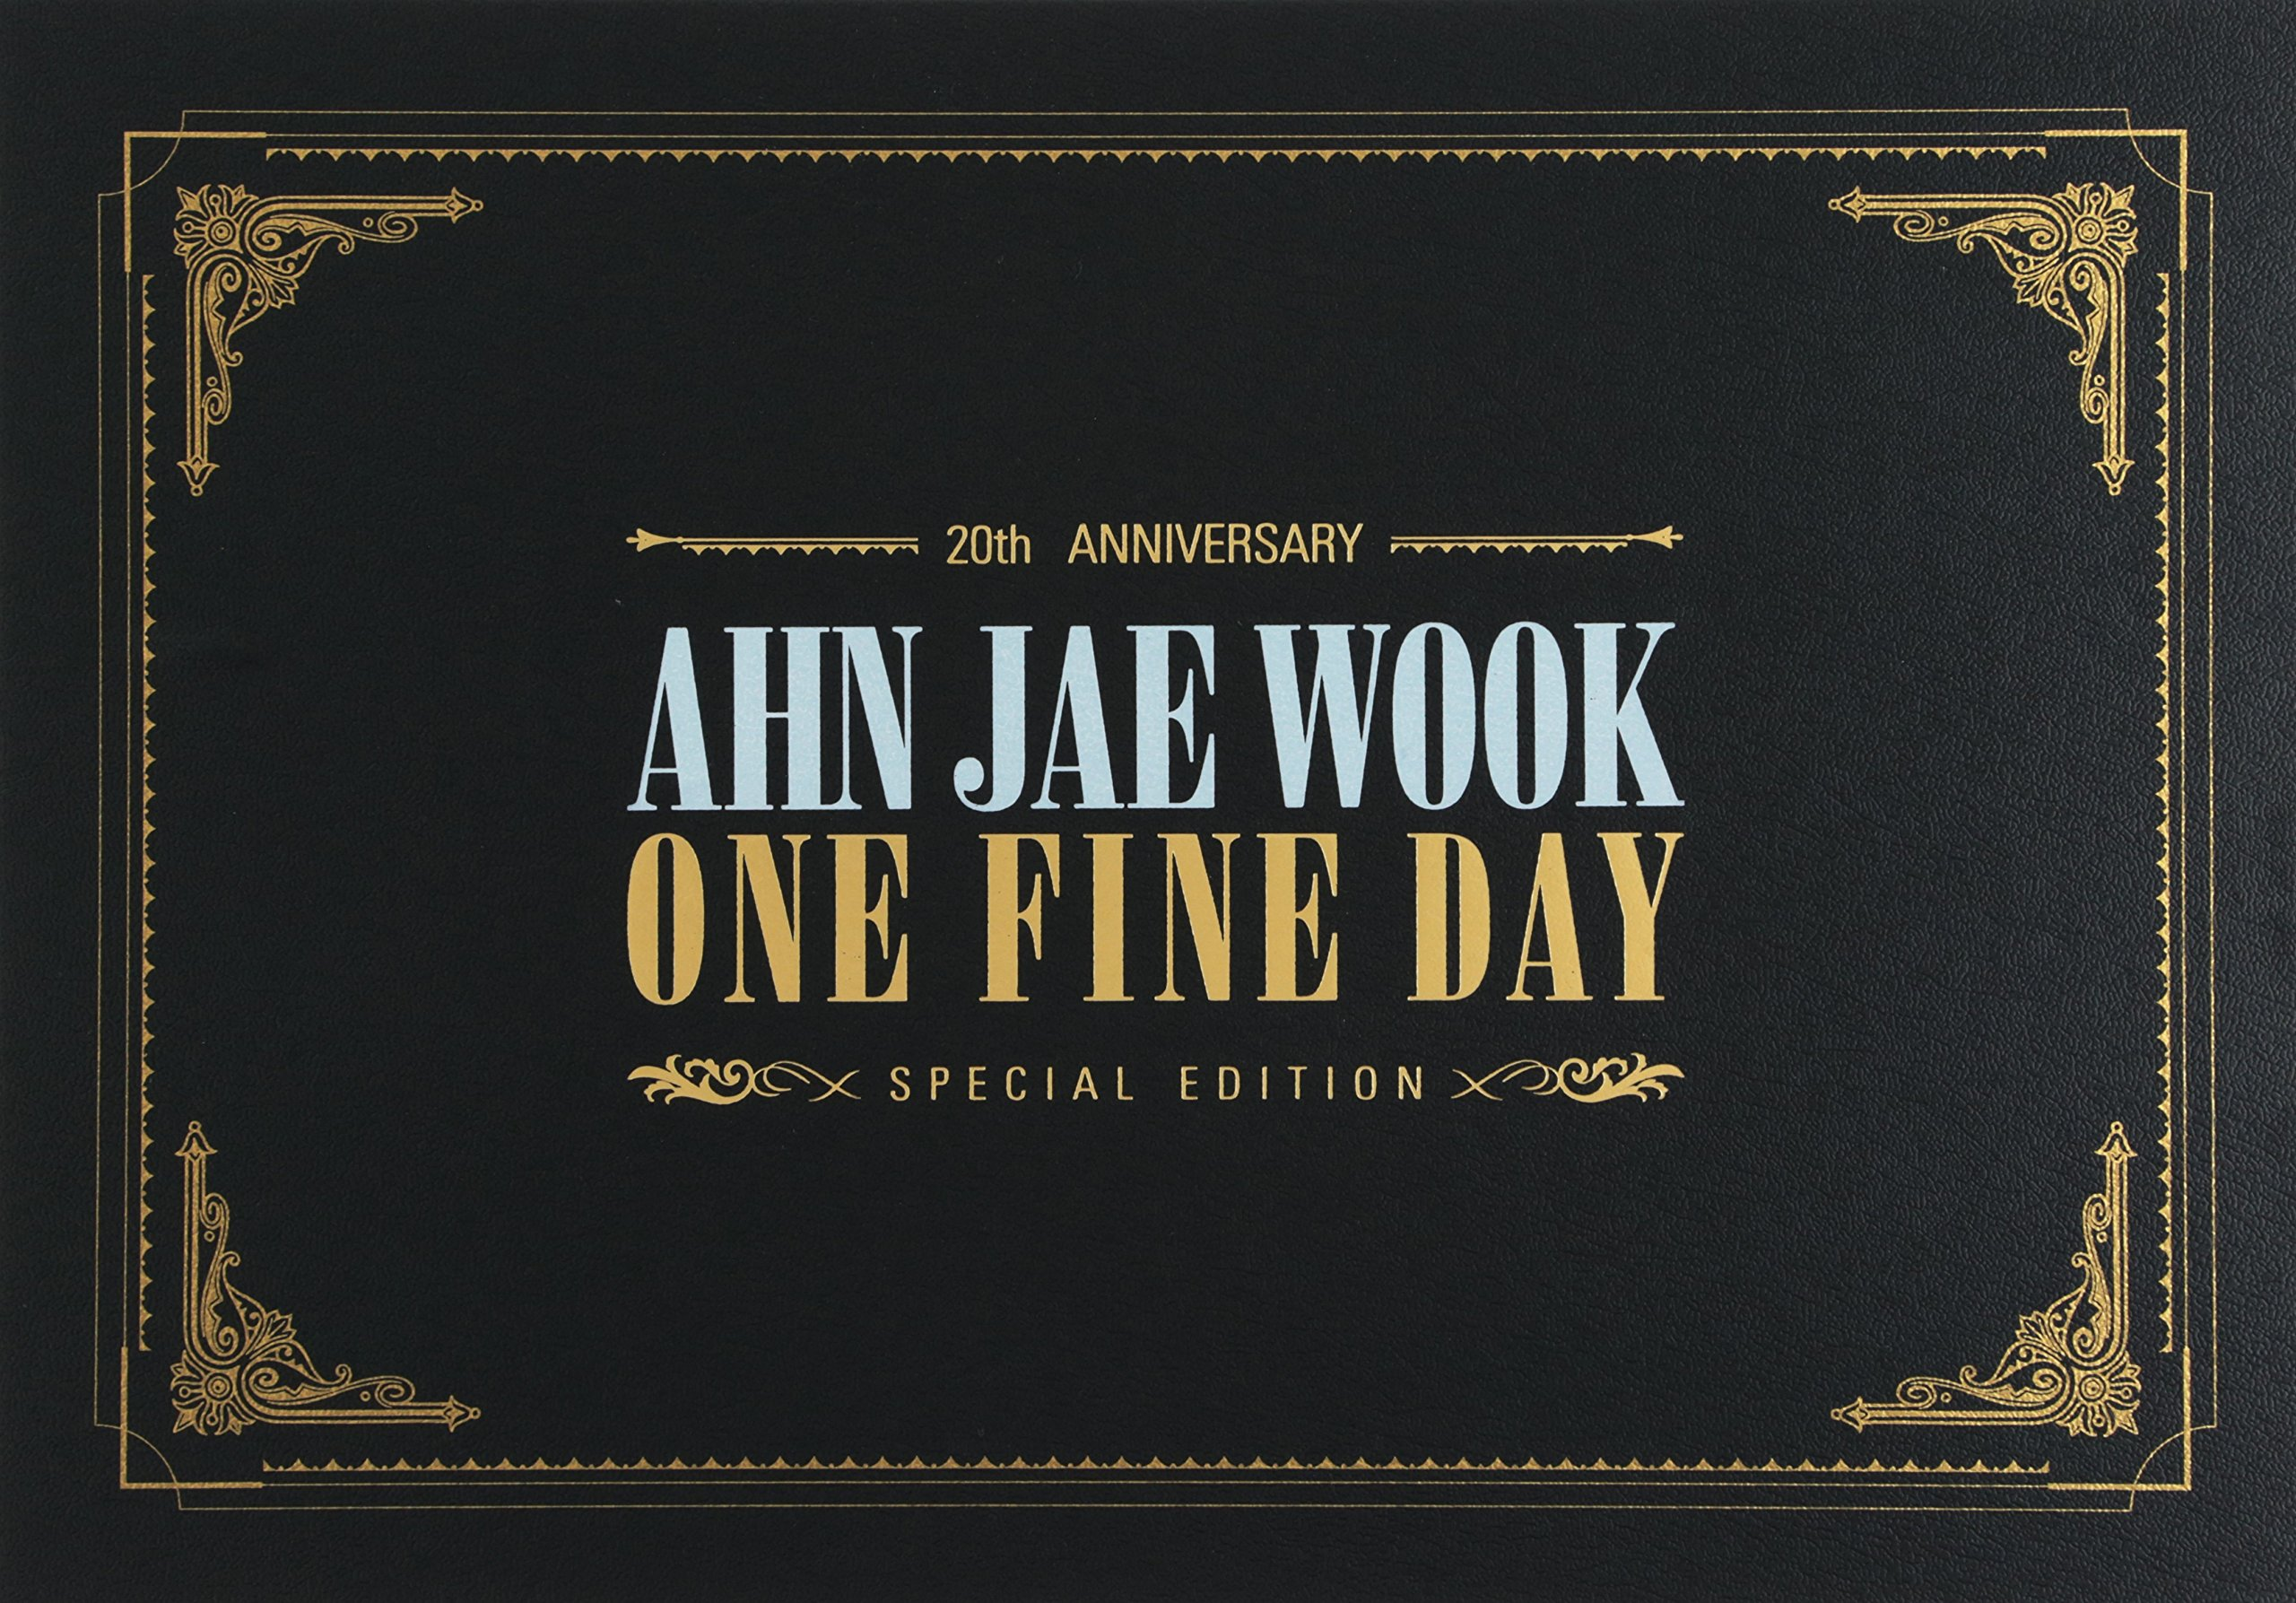 Ahn Jae Wook - 20th Anniv. Album [ONE FINE DAY] Special Edition by